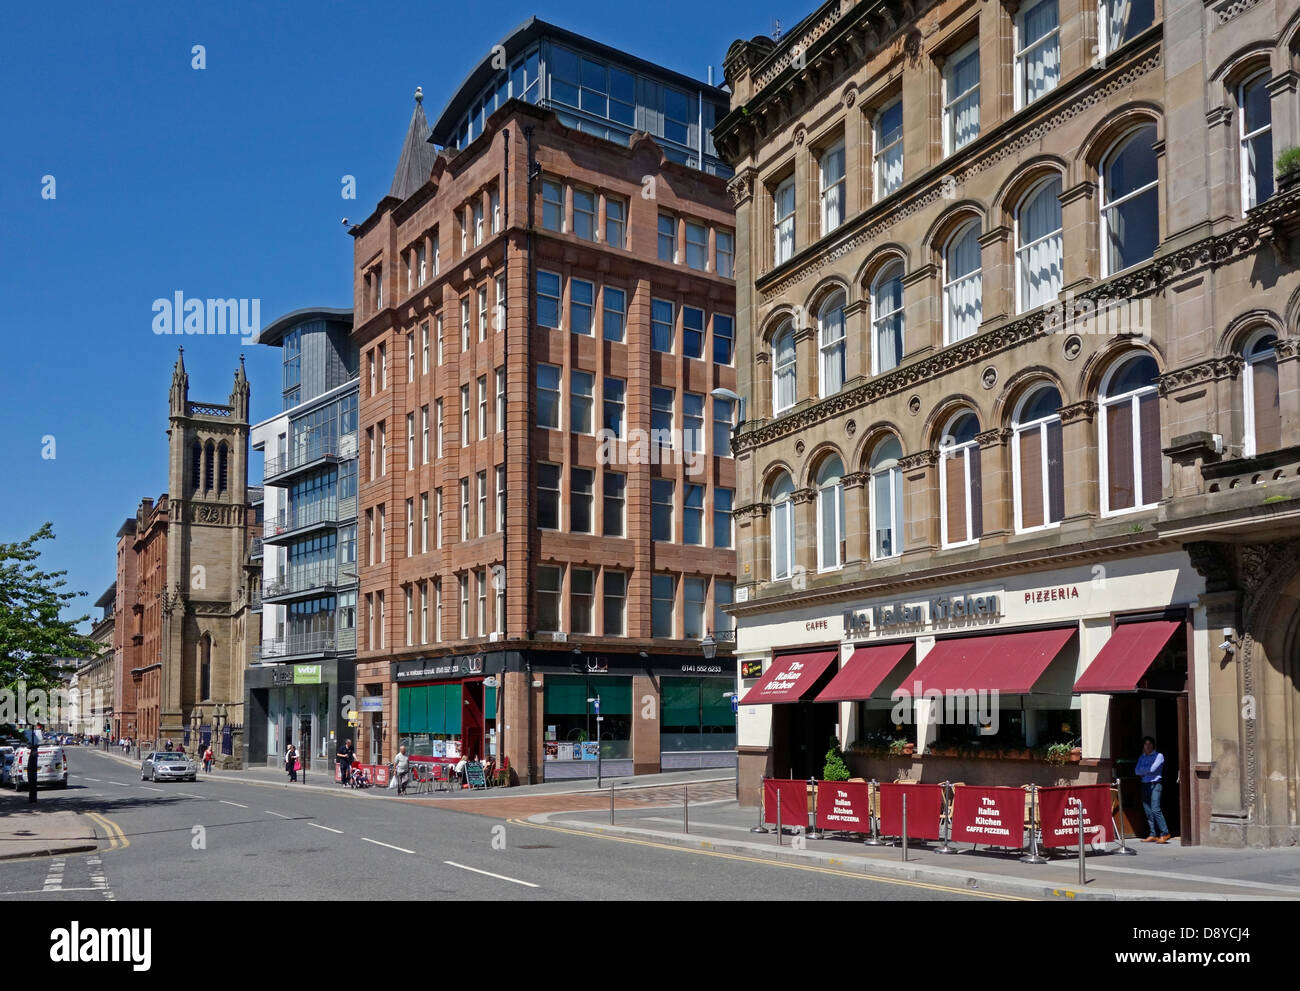 Ingram Street in the Merchant City area of Glasgow Scotland with eating places - Stock Image